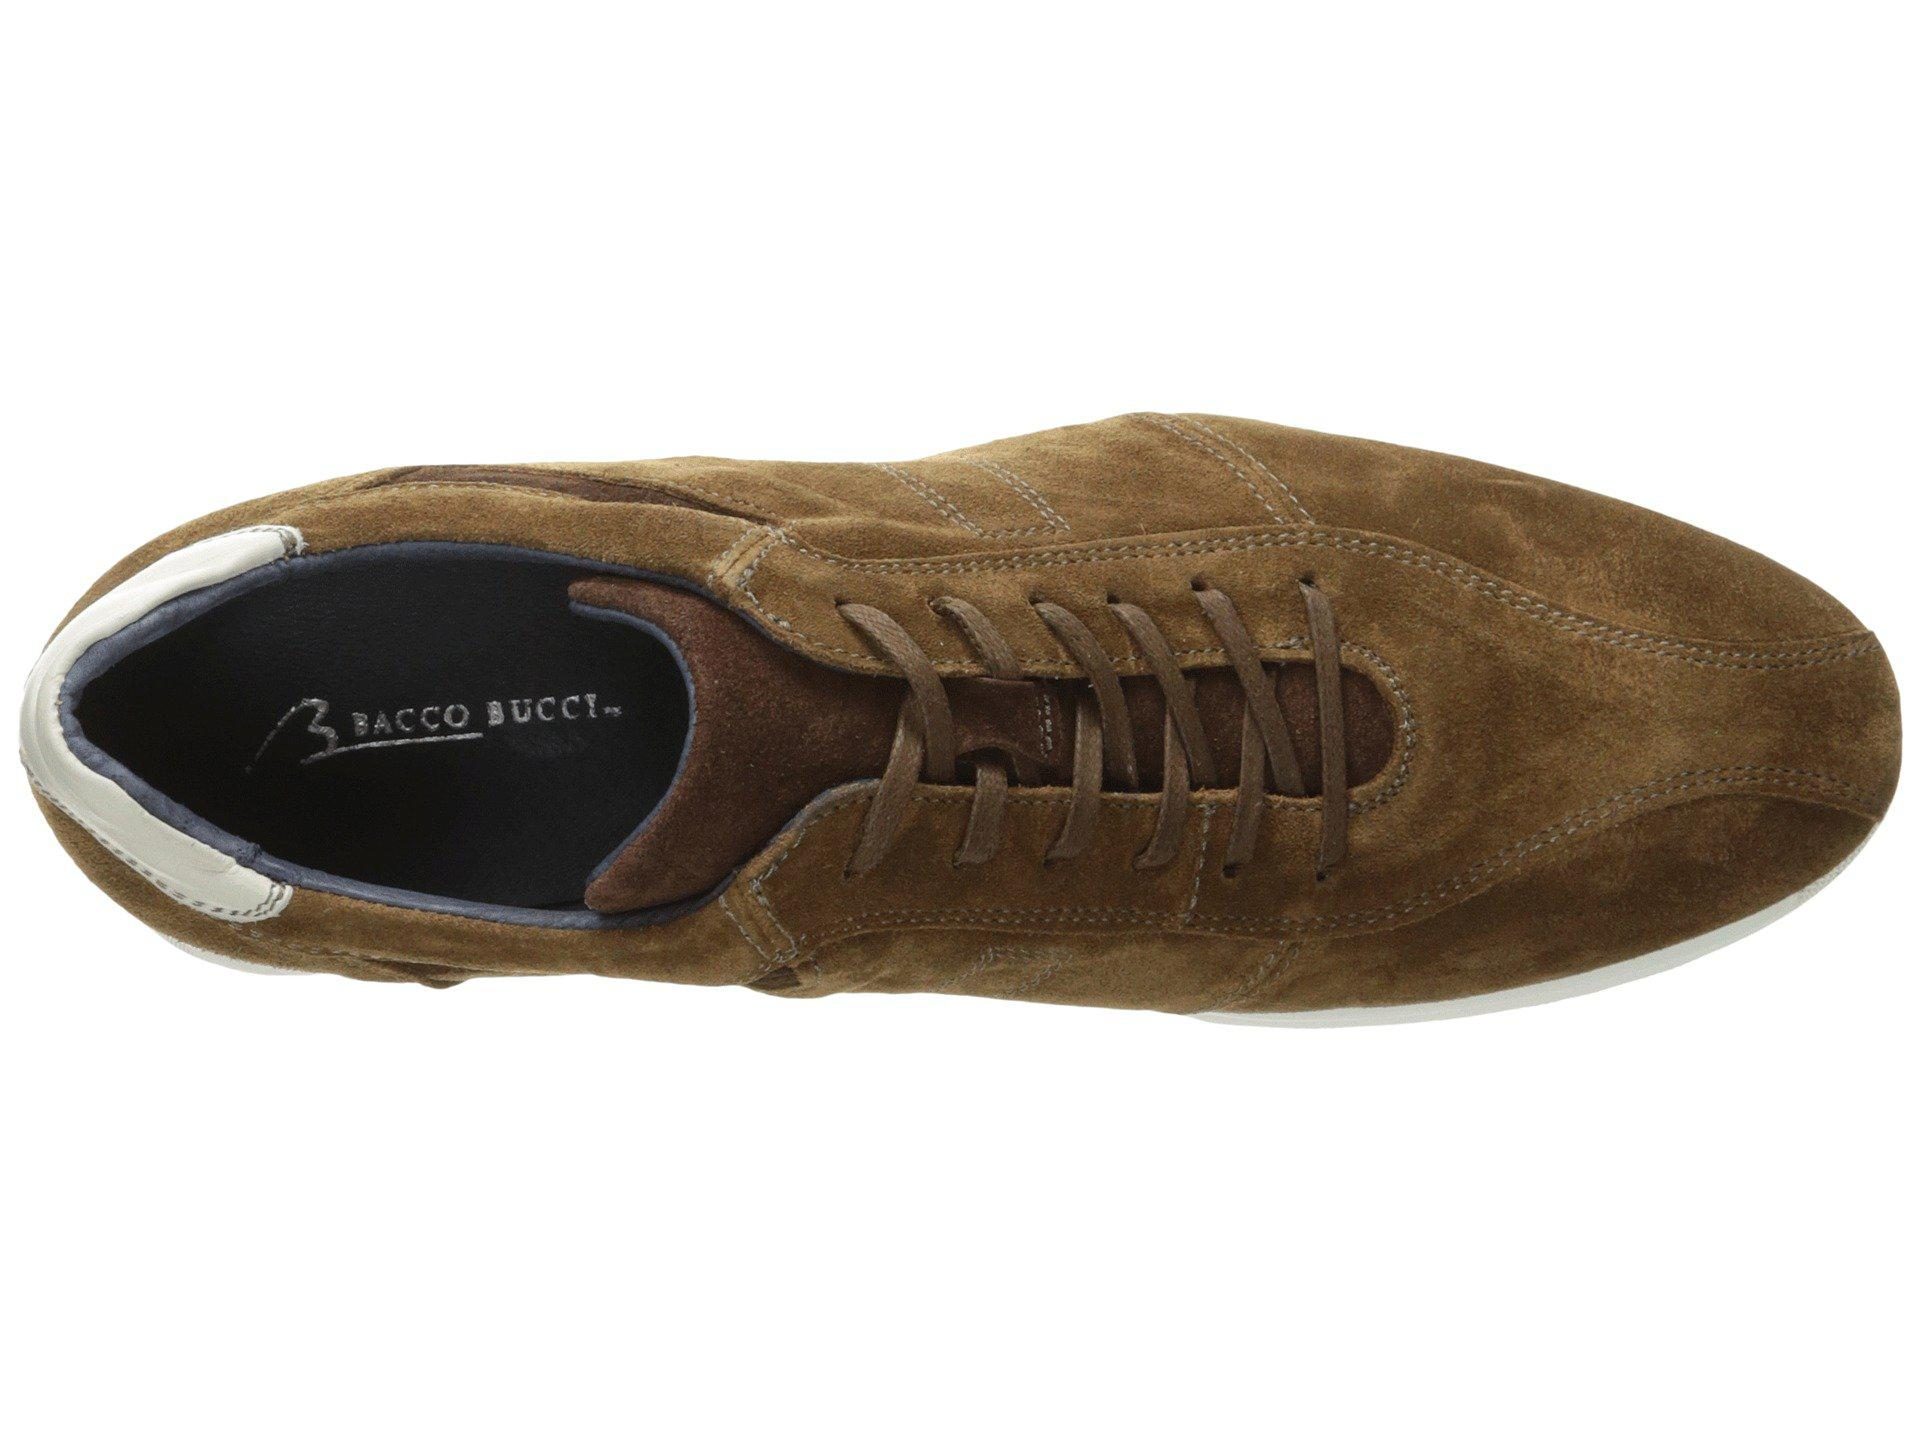 5029d3659d42 Lyst - Bacco Bucci Ambers in Brown for Men - Save 11.016949152542367%